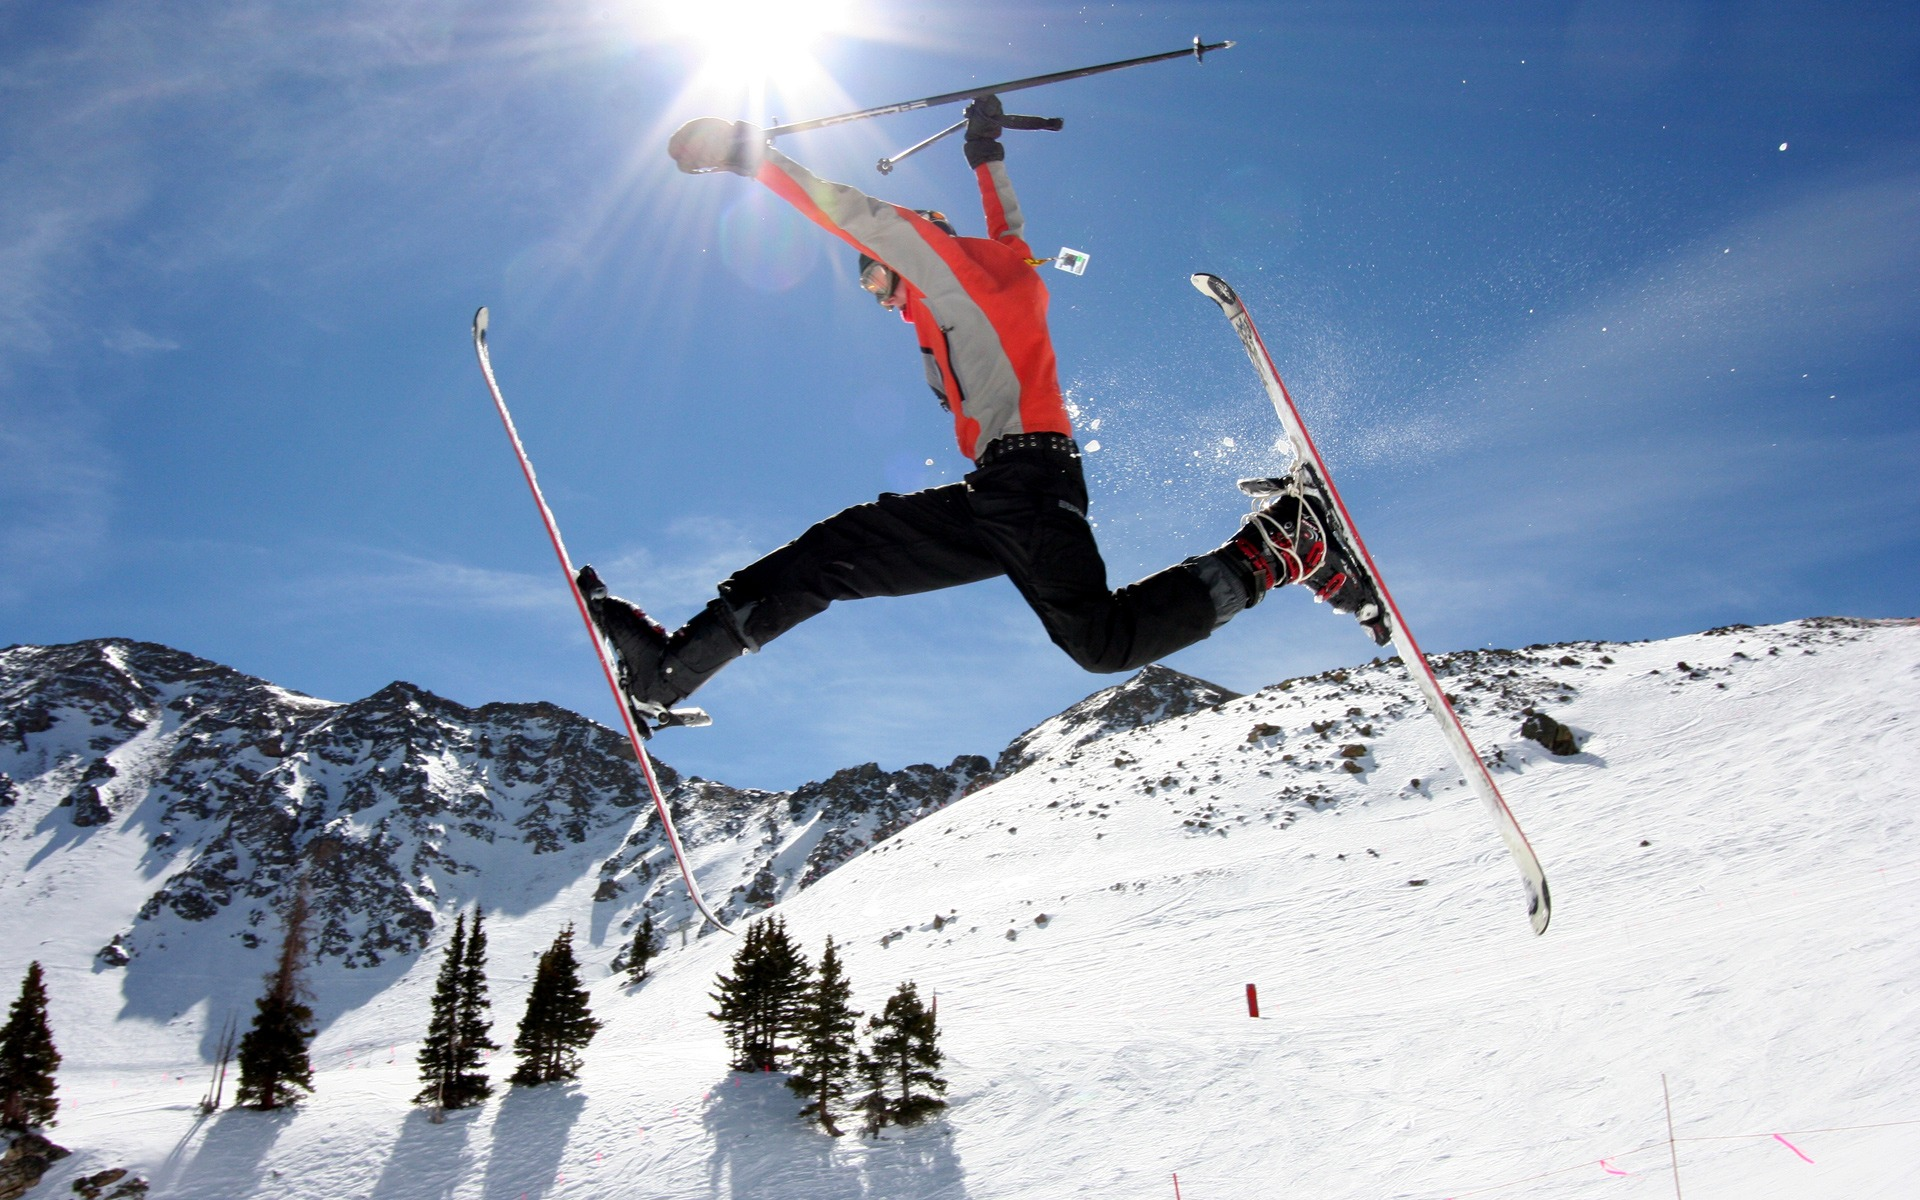 Ski Wallpaper Sports Wallpapers In Jpg Format For Free Download